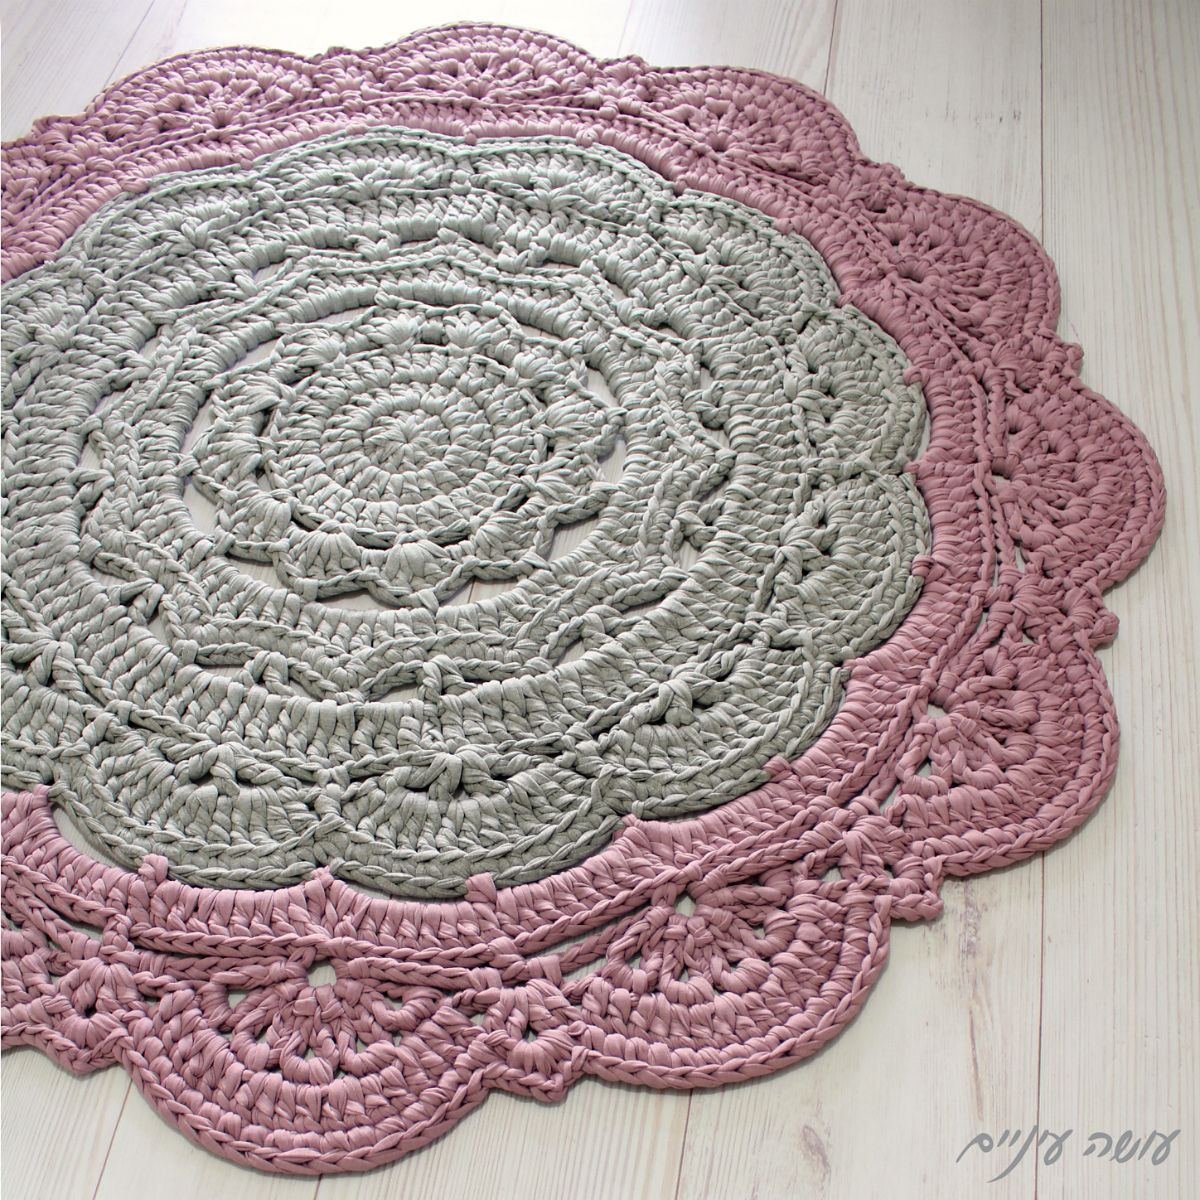 Large Snorka doily rug pattern by Liat Bentov | Doily rug, Ravelry ...